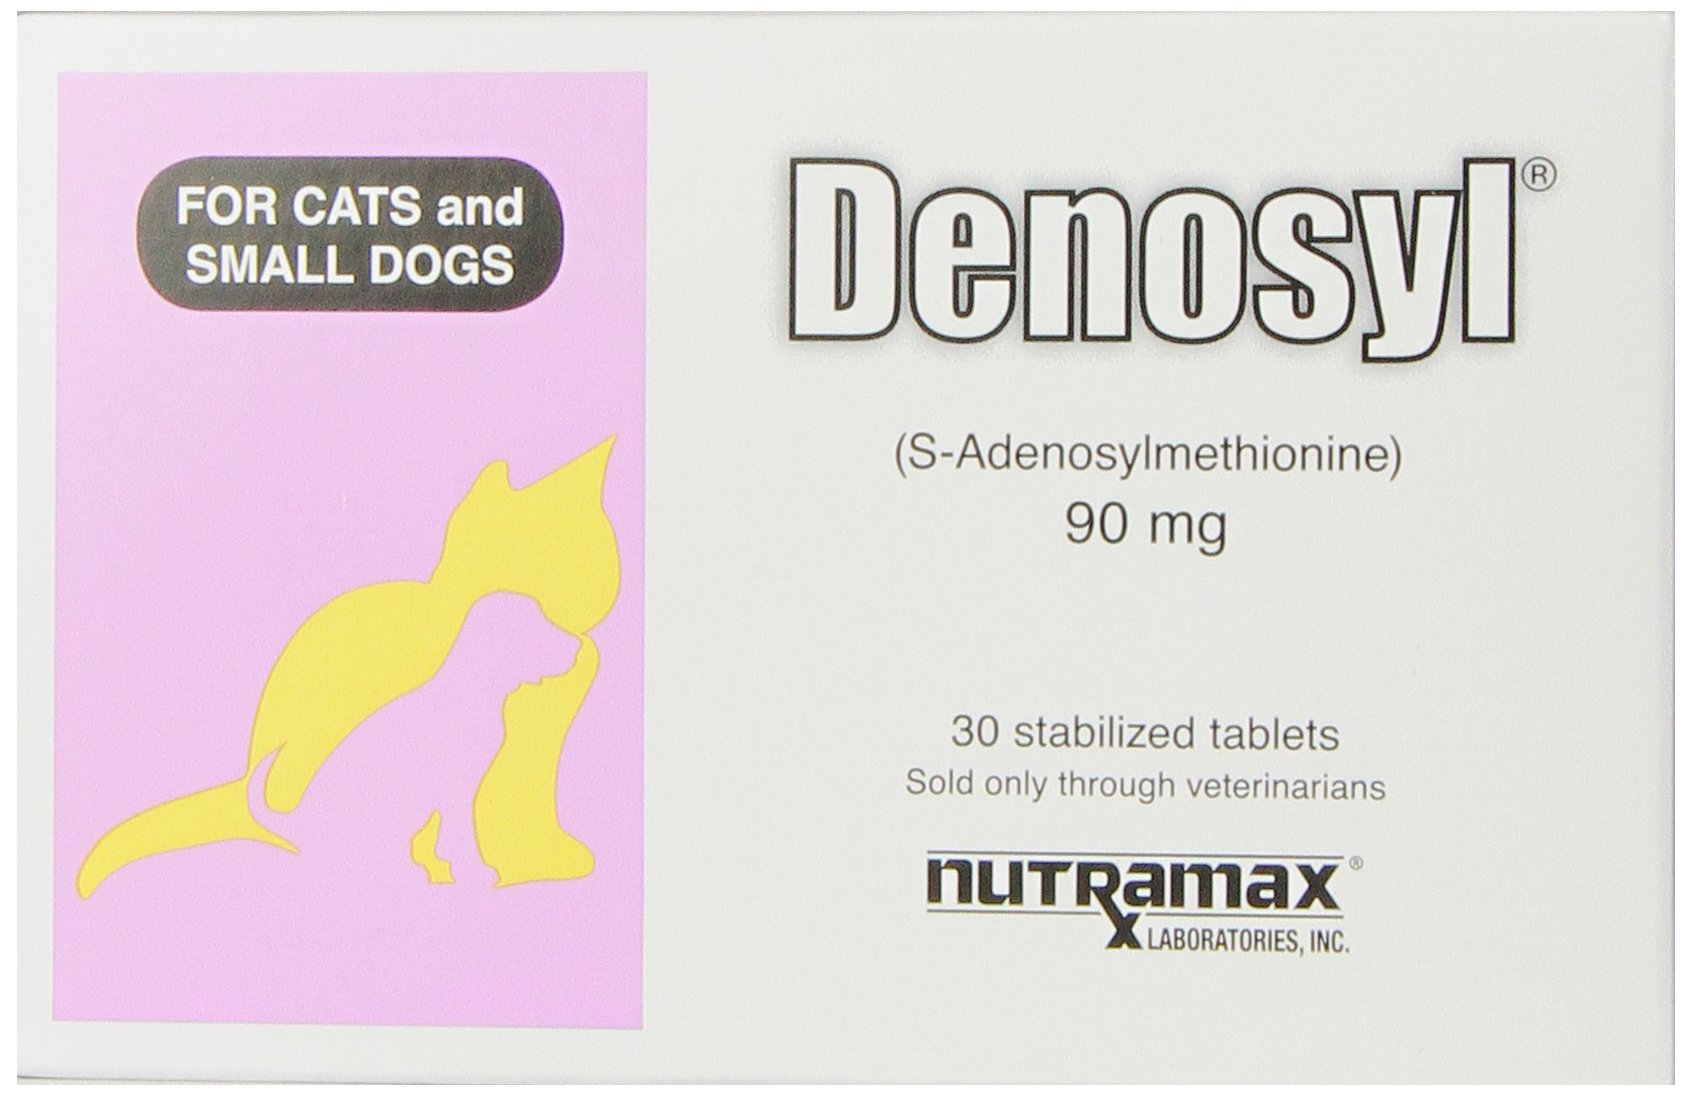 Nutramax Denosyl Tablets, Small Dogs and Cats, 90mg, 30 Count, 6-Pack